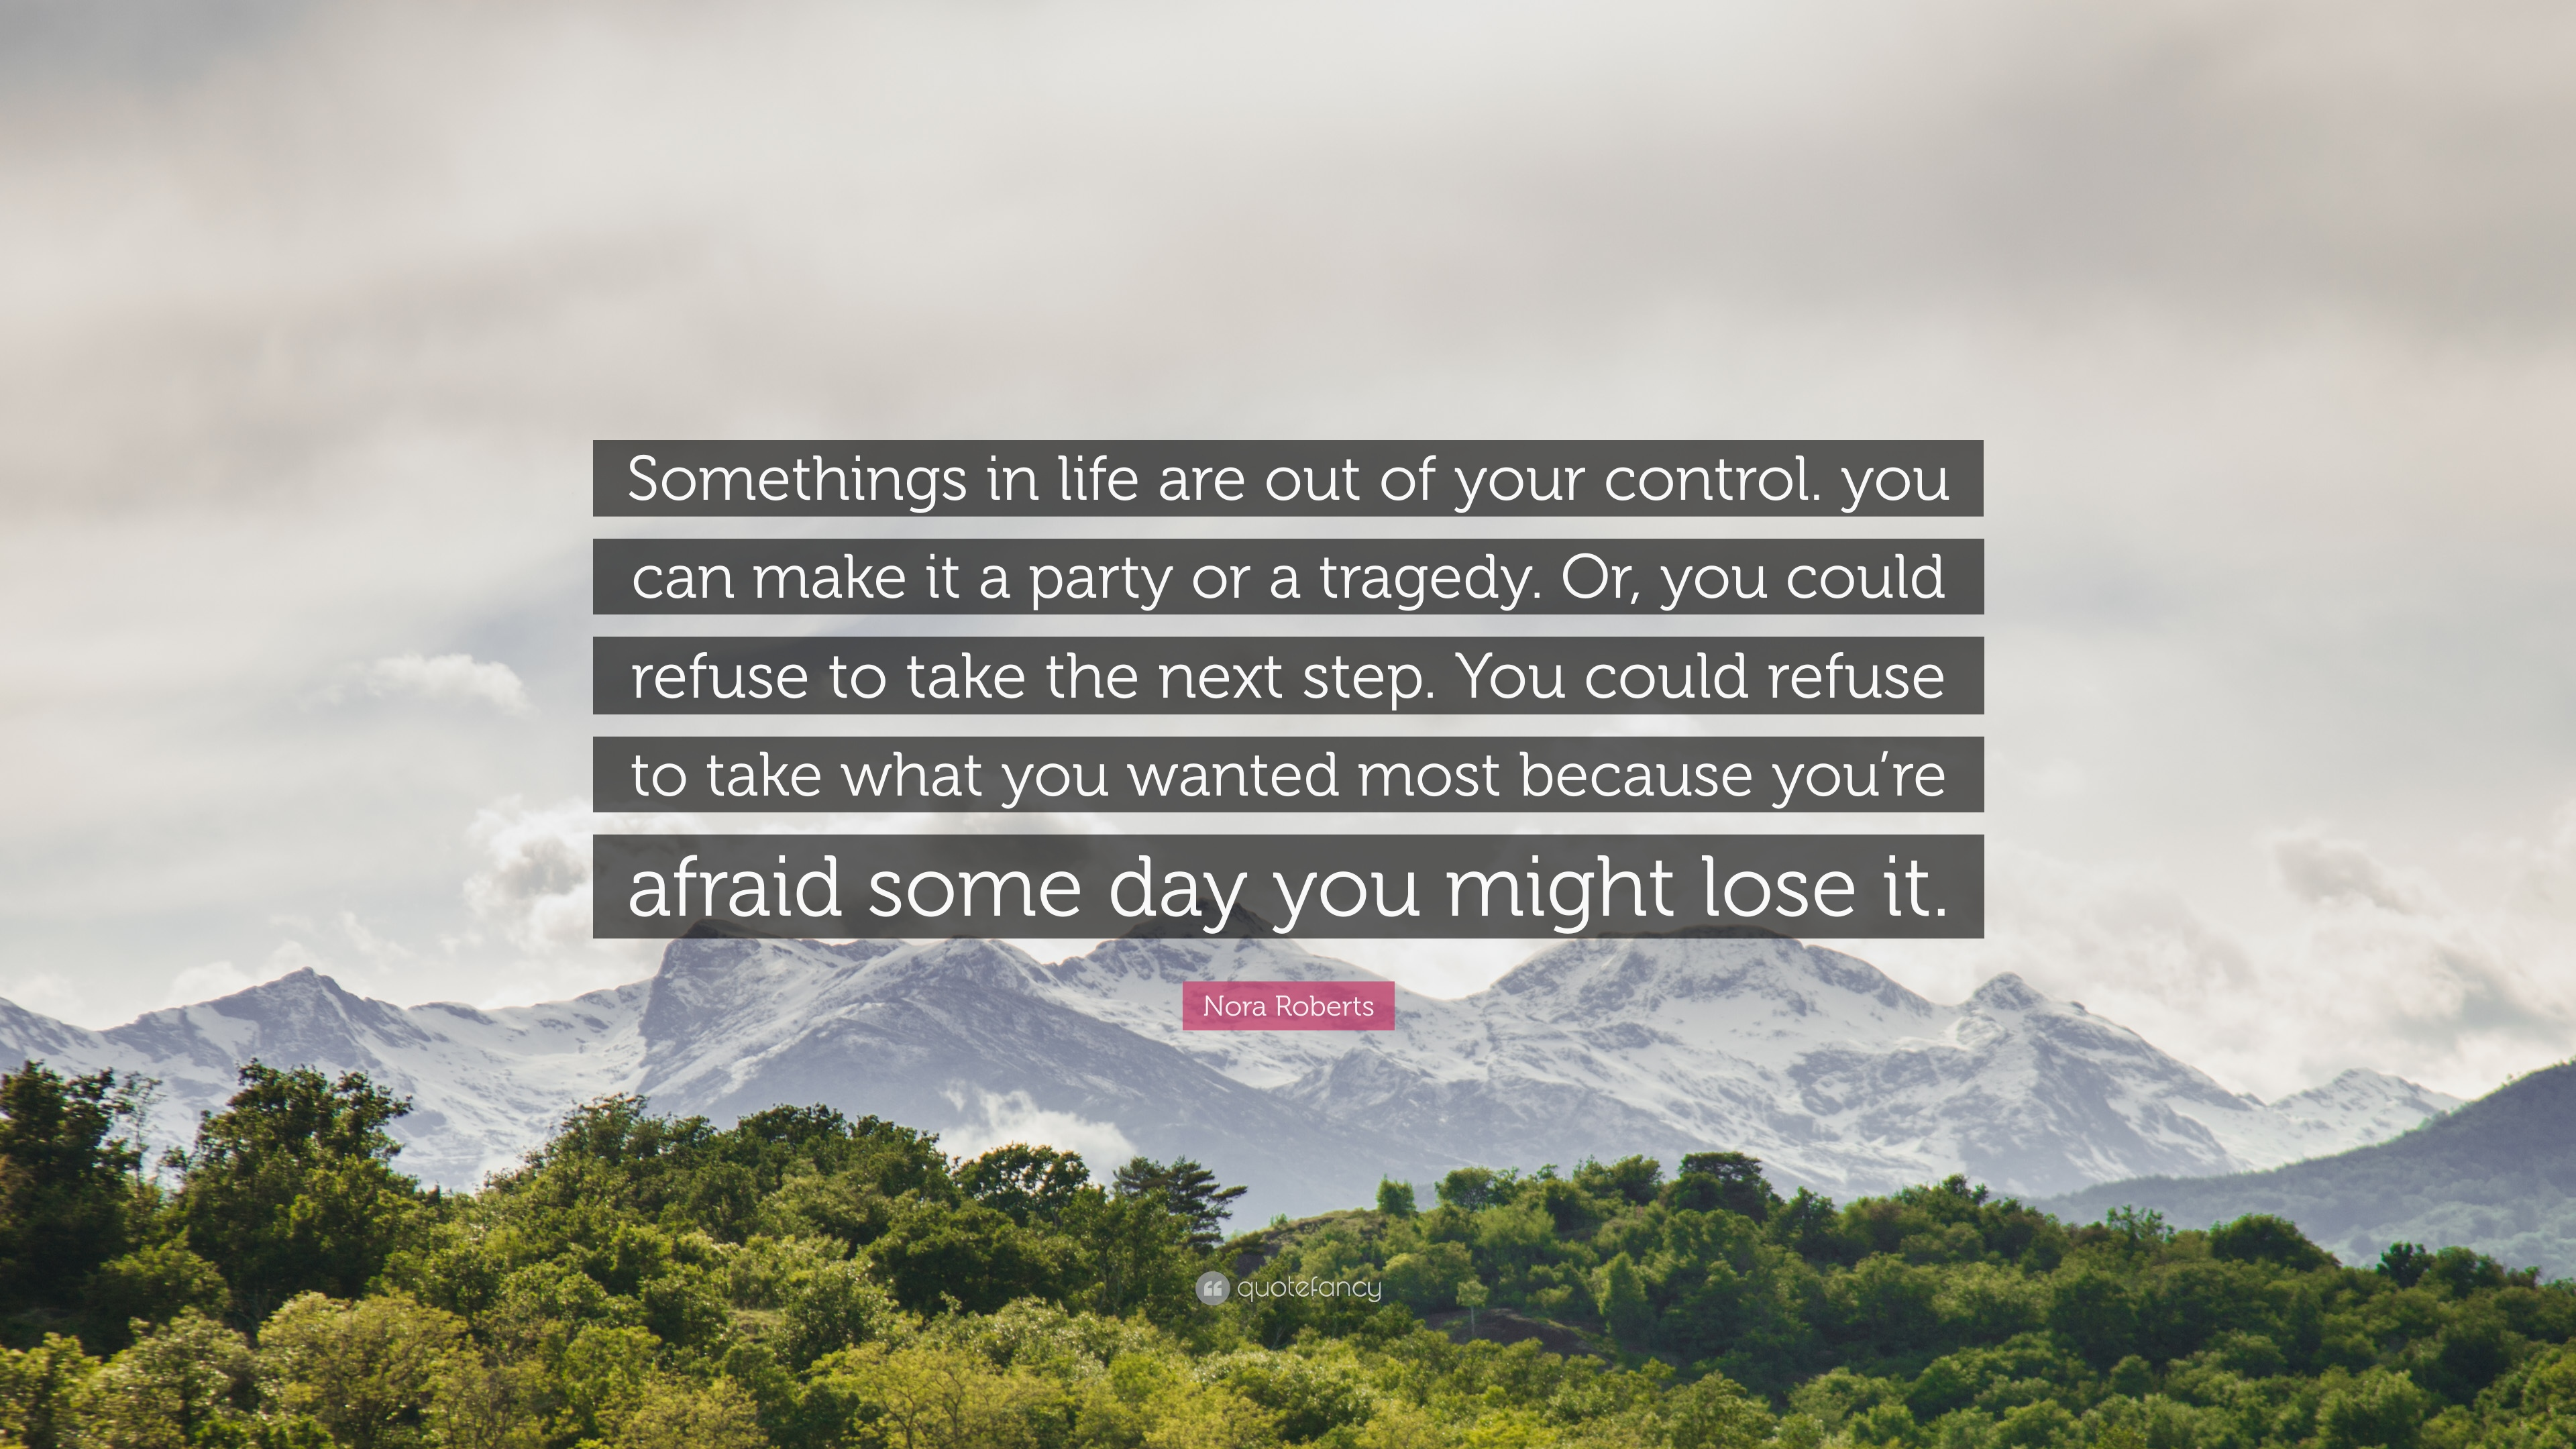 Nora Roberts Quote Somethings In Life Are Out Of Your Control You